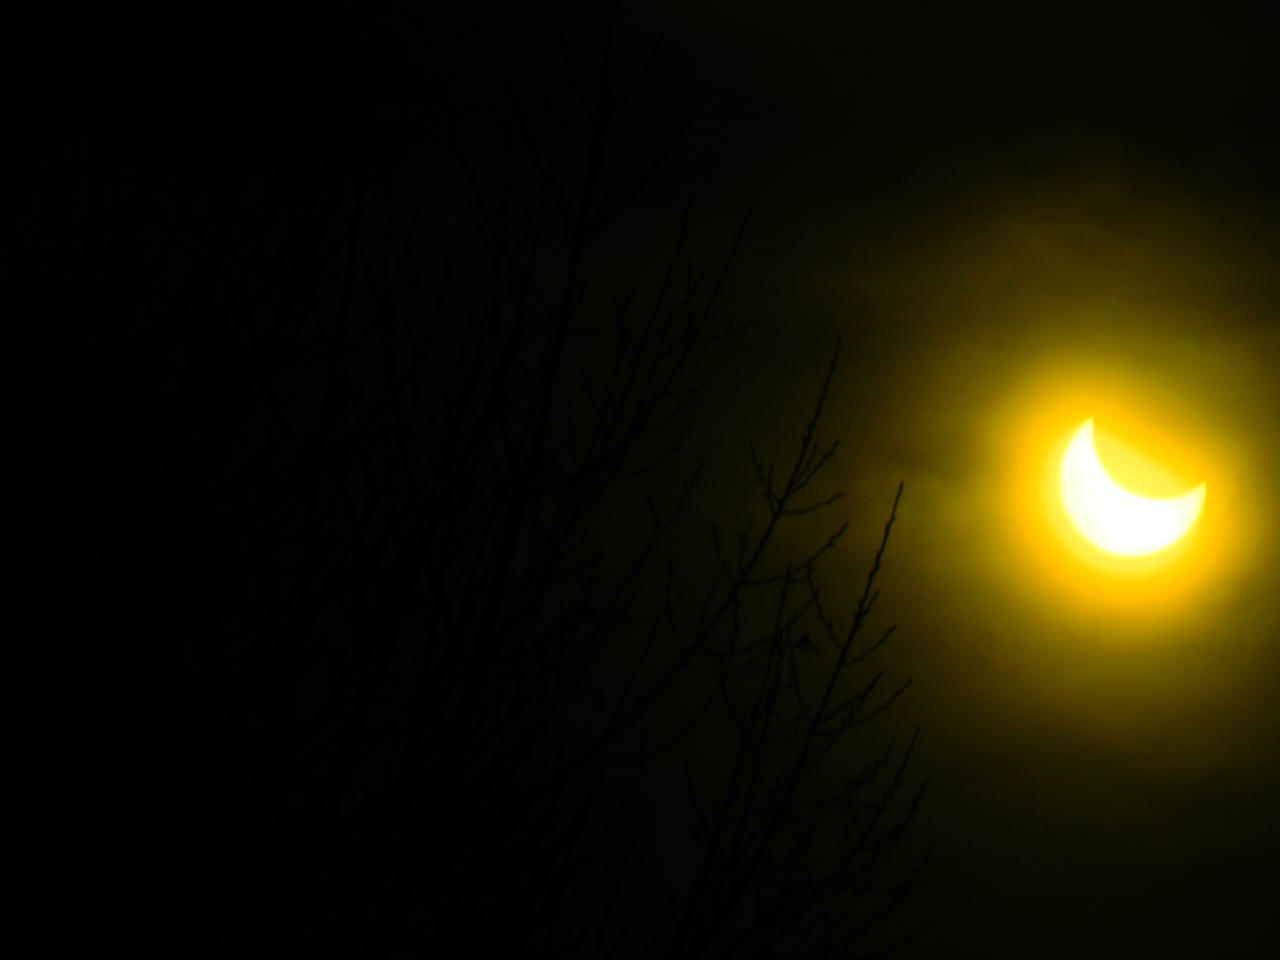 Wyoming Partial Eclipse Oct 23, 2014 (3 of 4) by SEMC